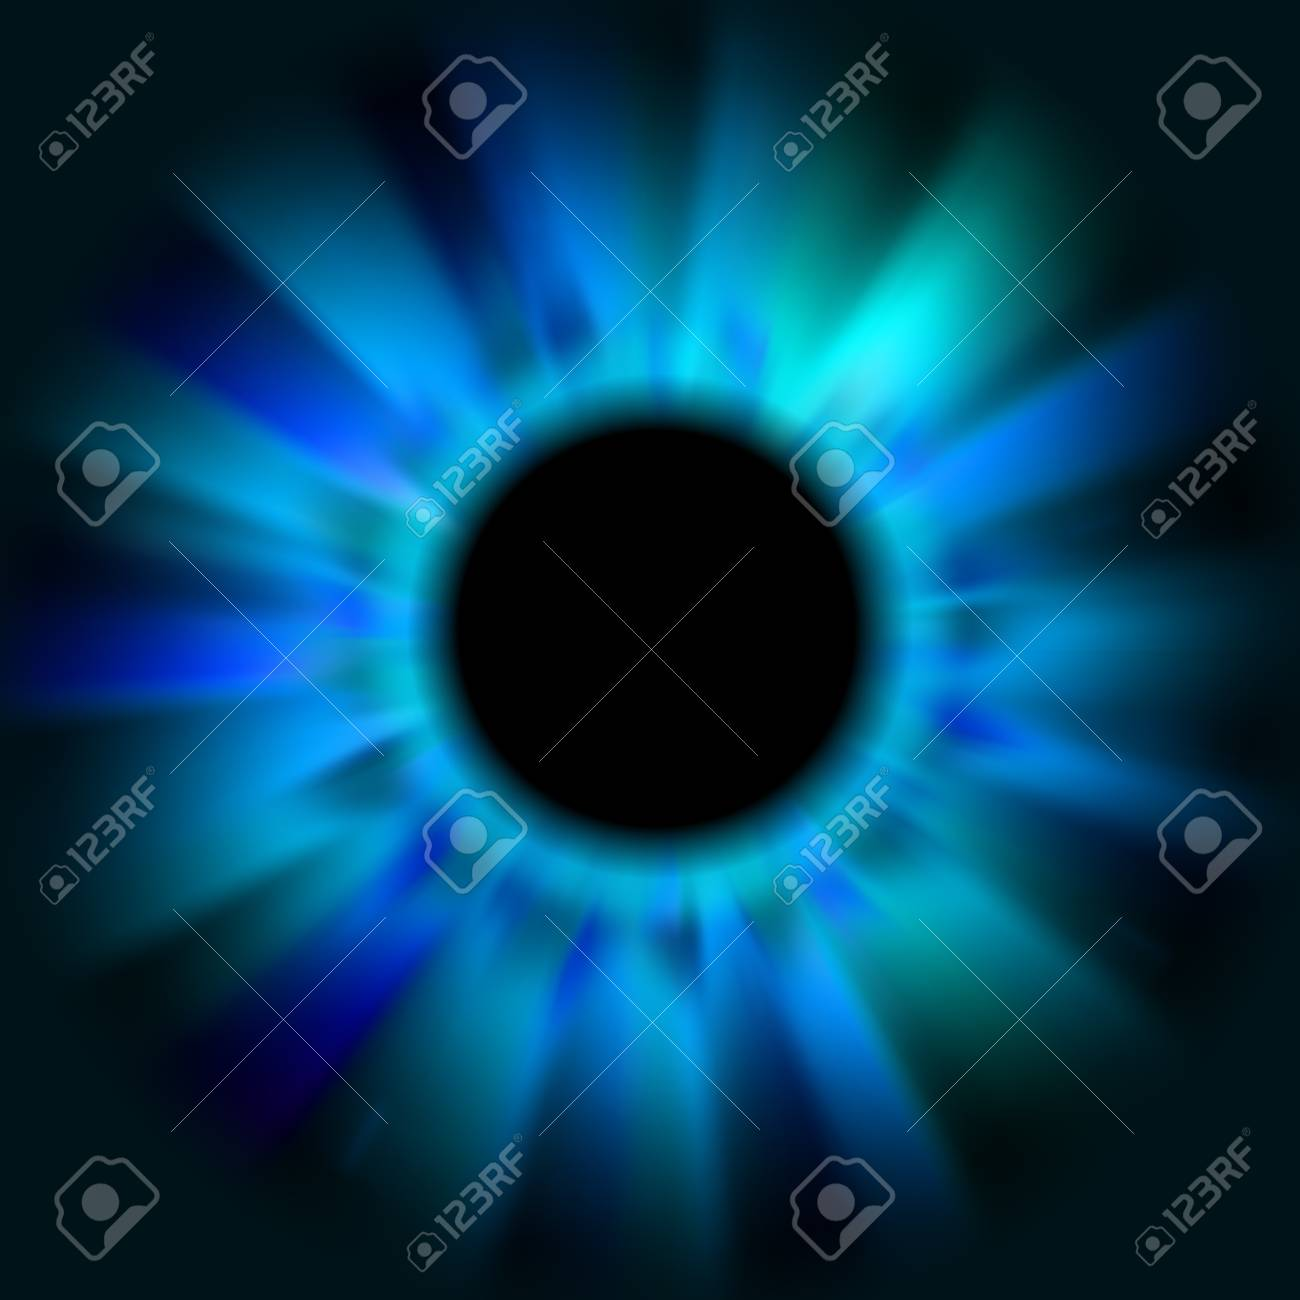 abstract background in the form of burning gas jets Stock Photo - 16320218